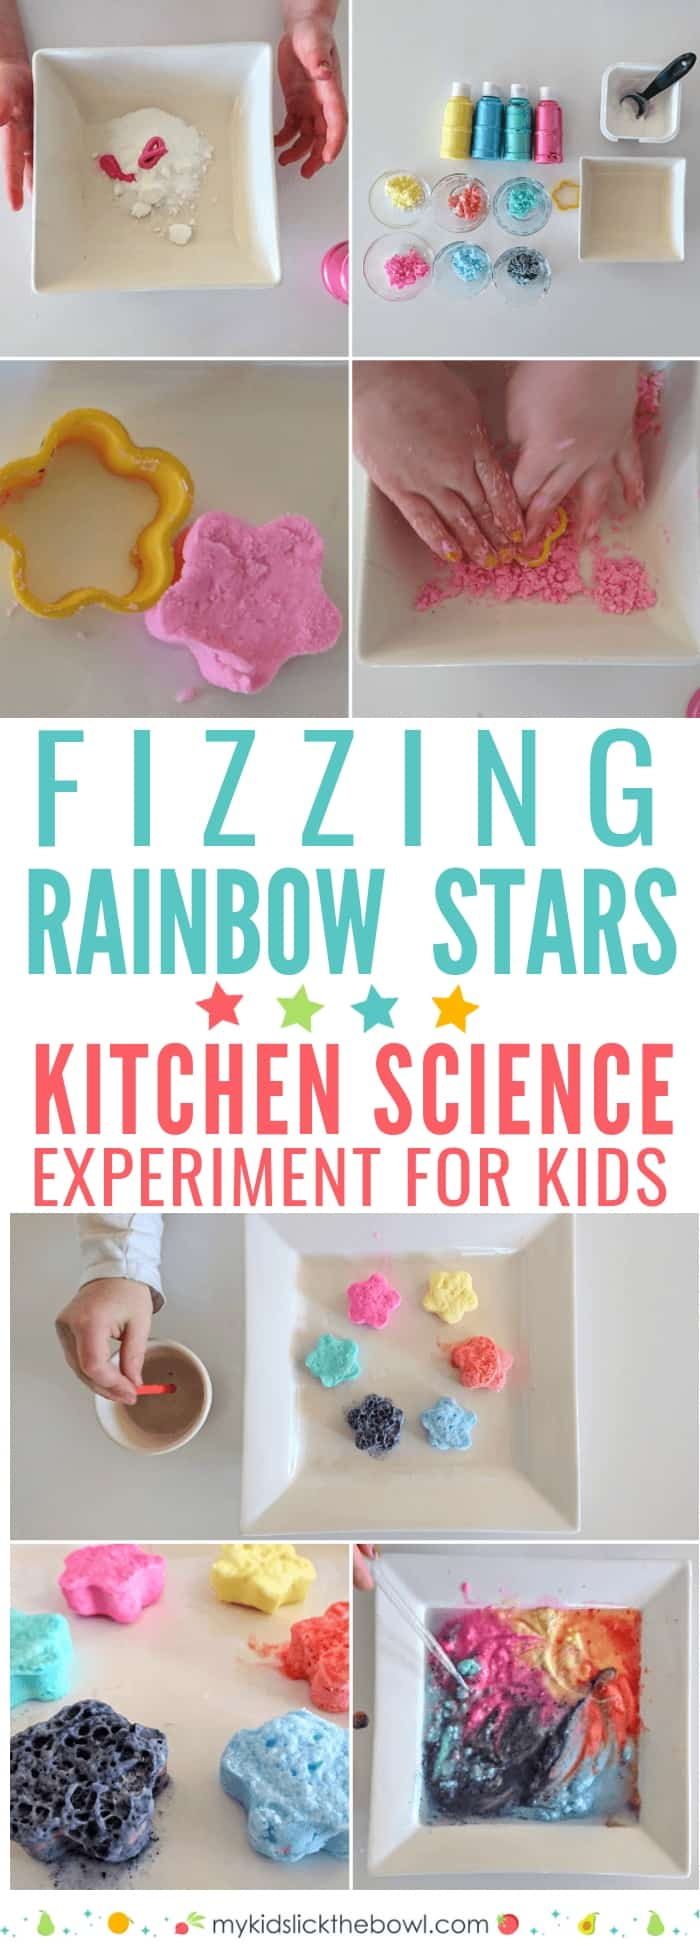 Fizzing Rainbow Stars a Kitchen Science Experiment